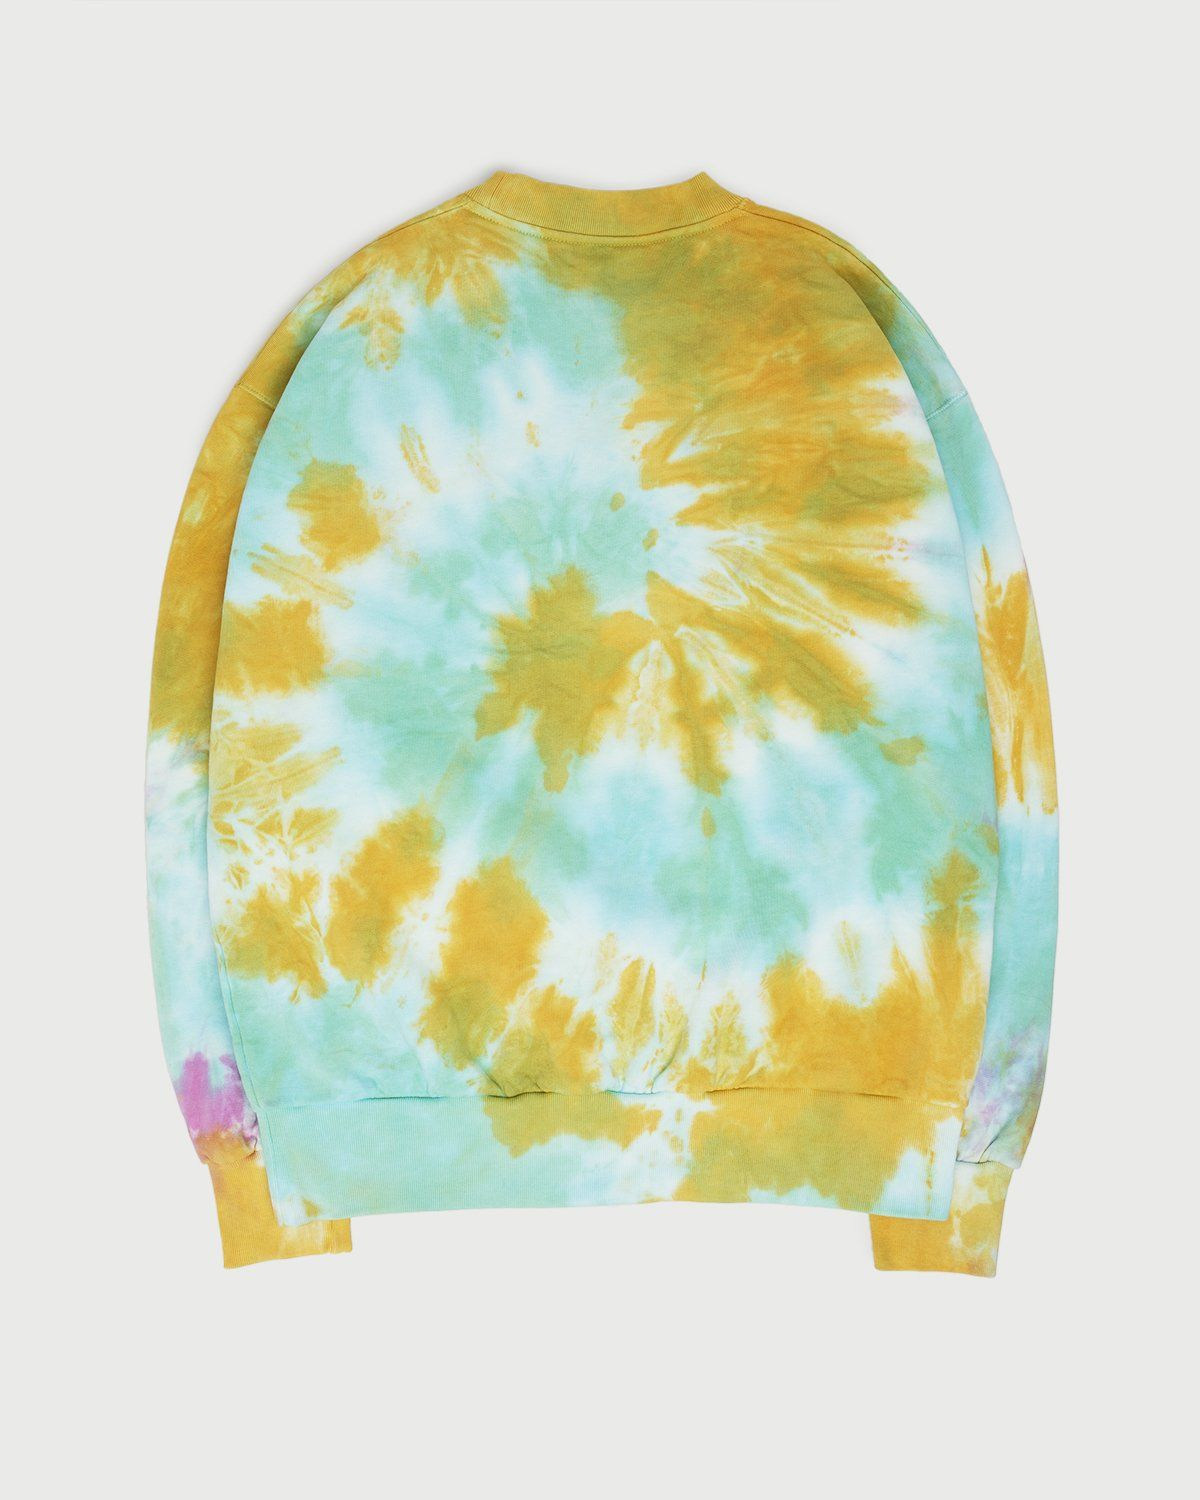 Aries - No Problemo Tie Dye Sweatshirt Multicolor - Image 3